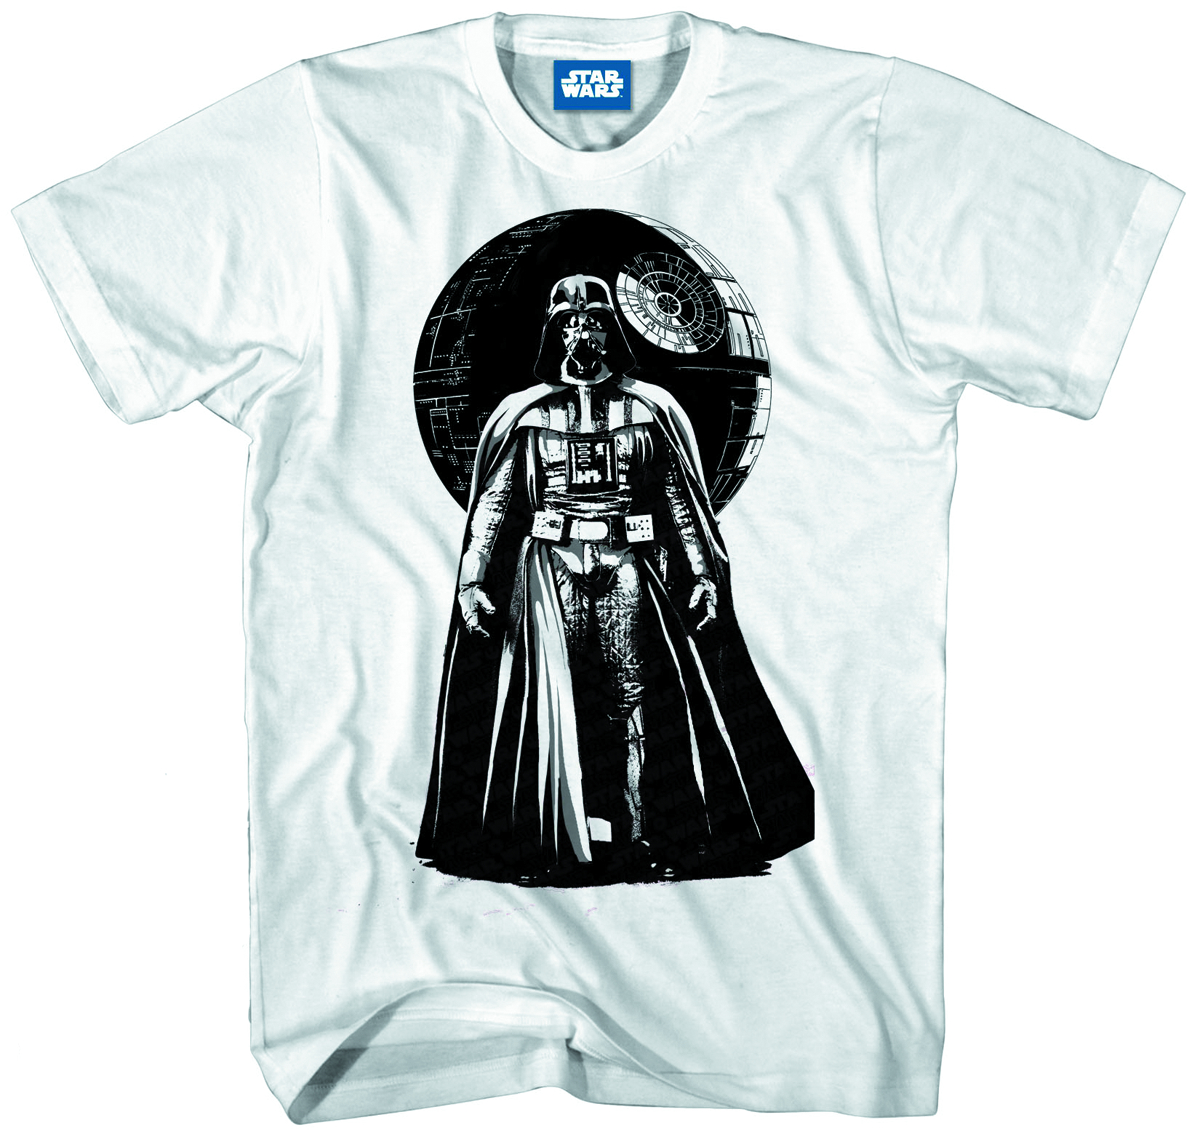 STAR WARS VADER WORLD PX WHT T/S MED